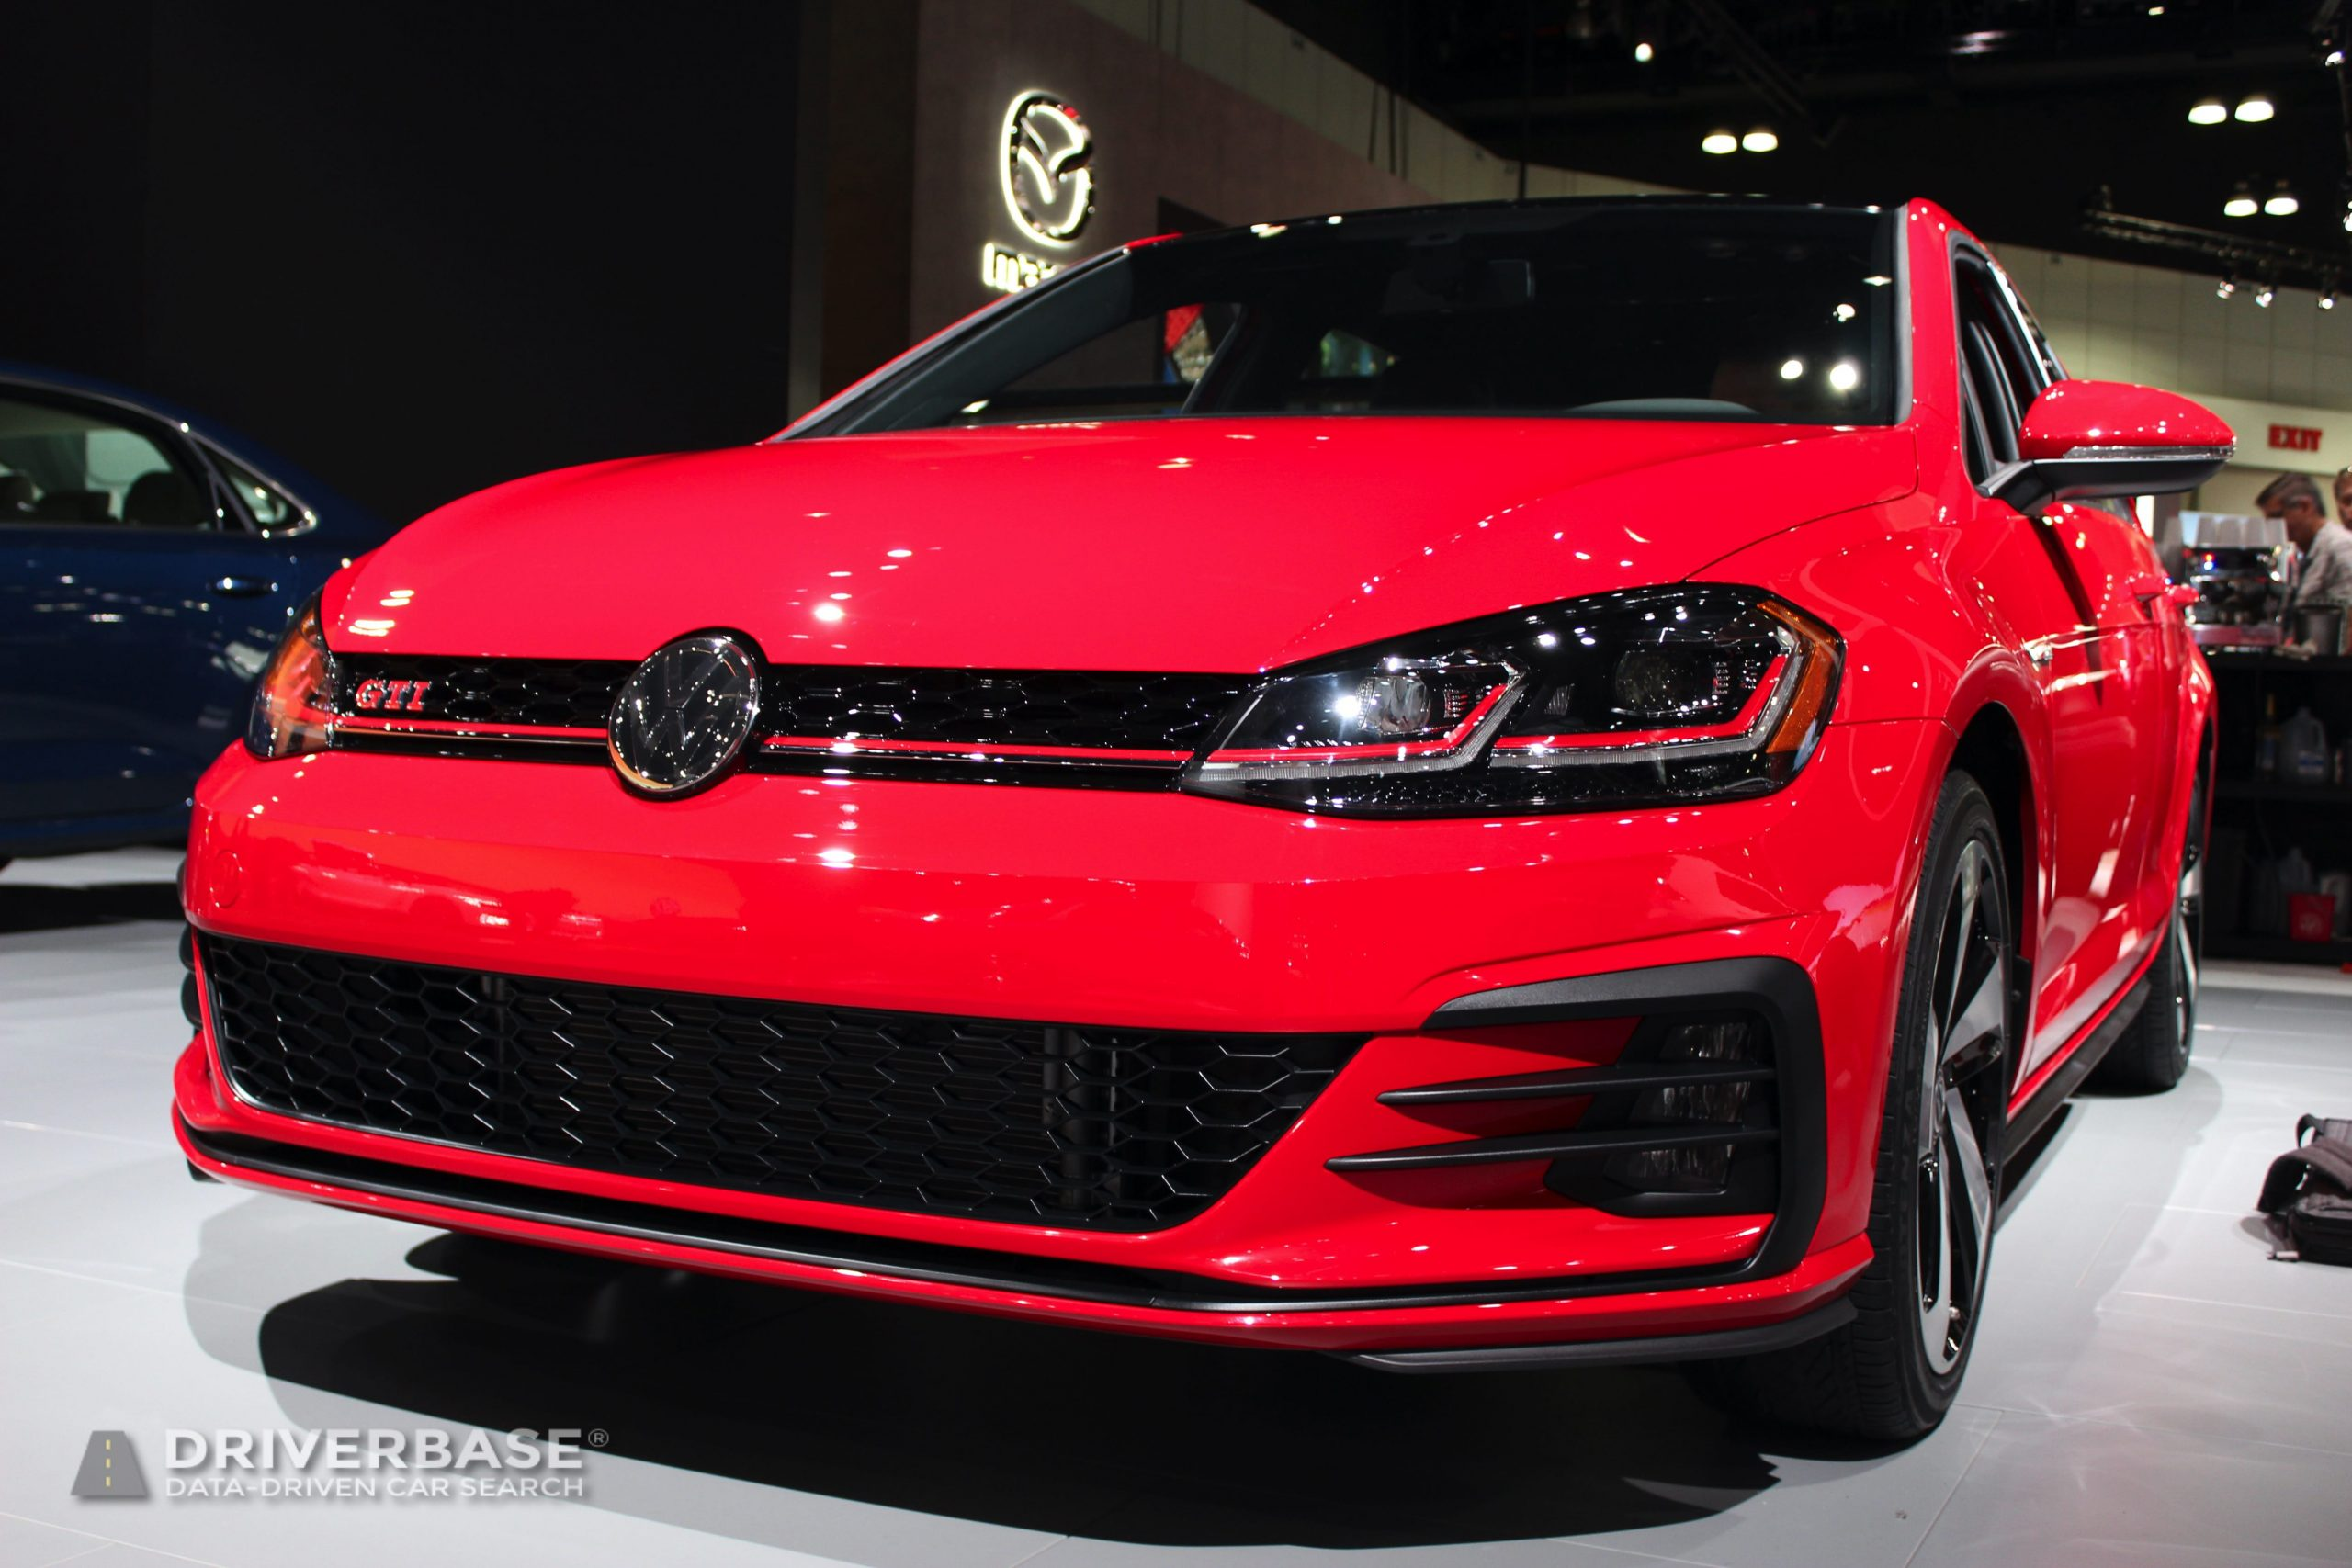 2020 Volkswagen Golf GTI Autobahn at the 2019 Los Angeles Auto Show